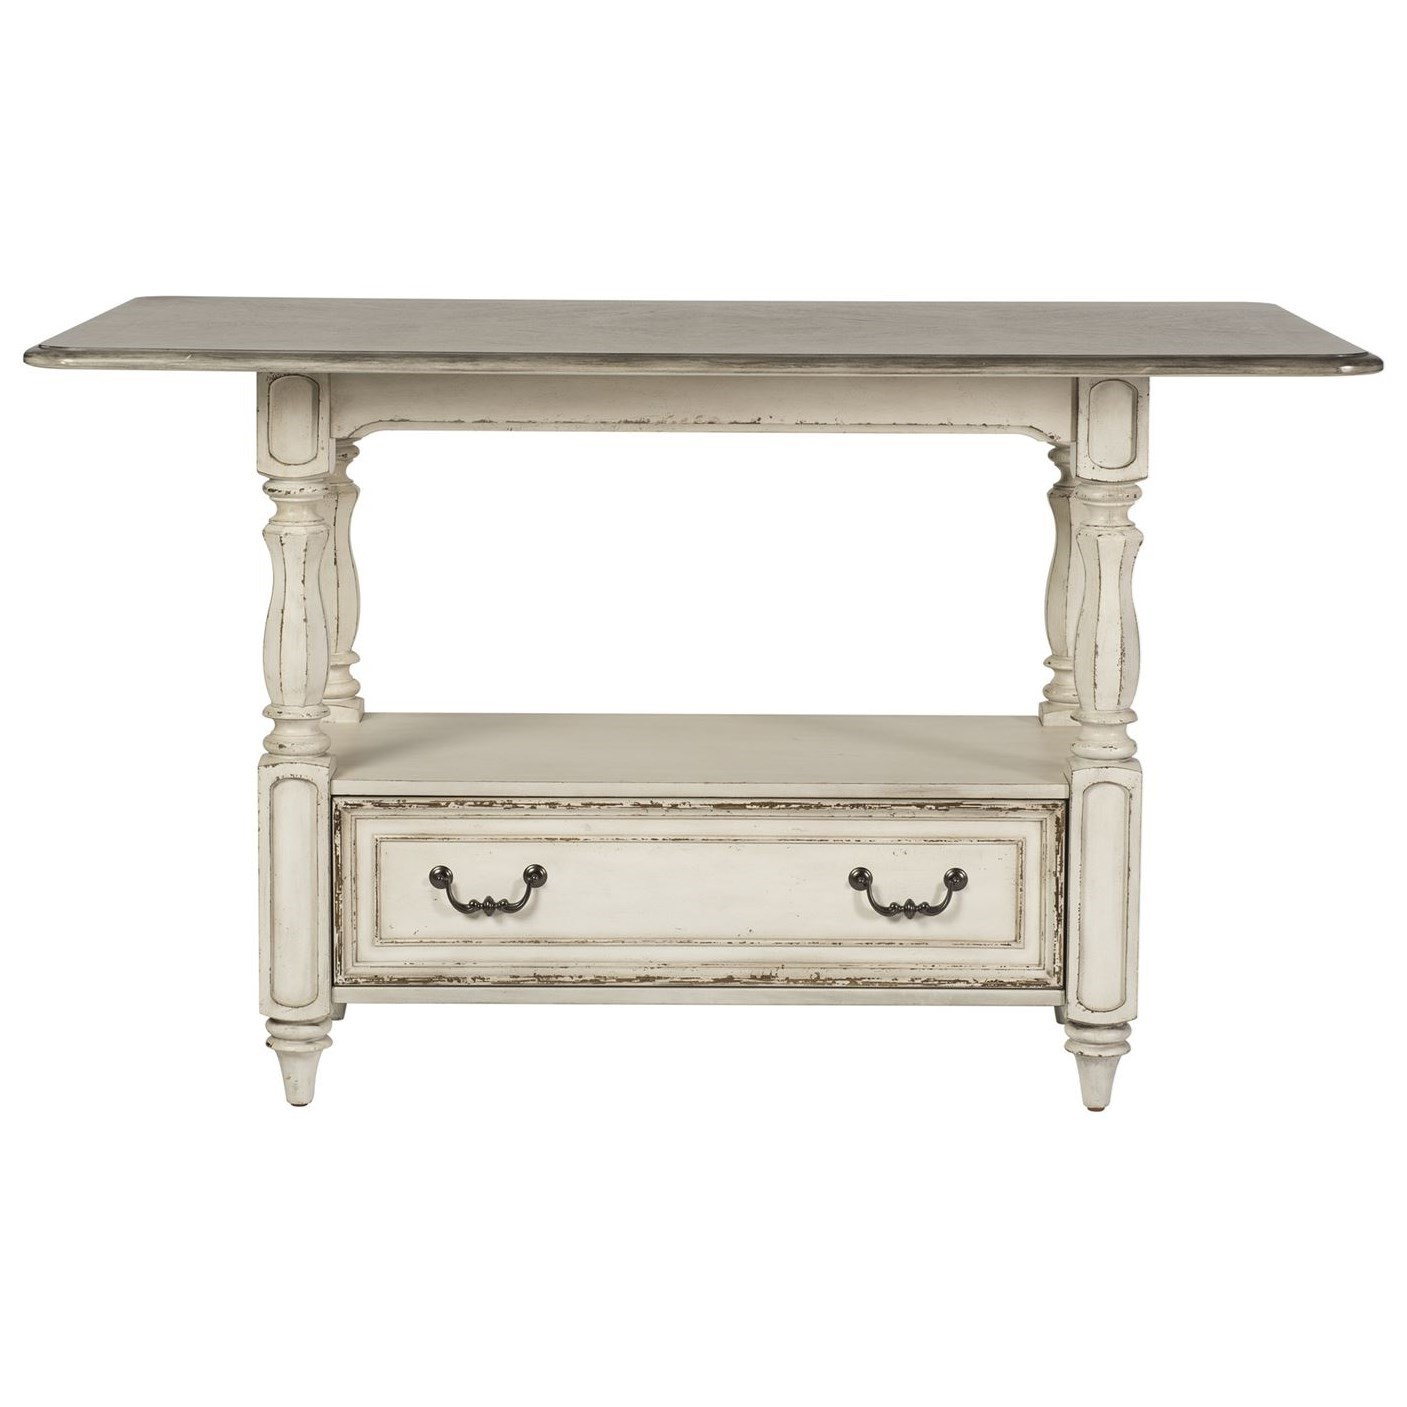 Magnolia Manor Dining Rectangular Gathering Table by Liberty Furniture at Bullard Furniture